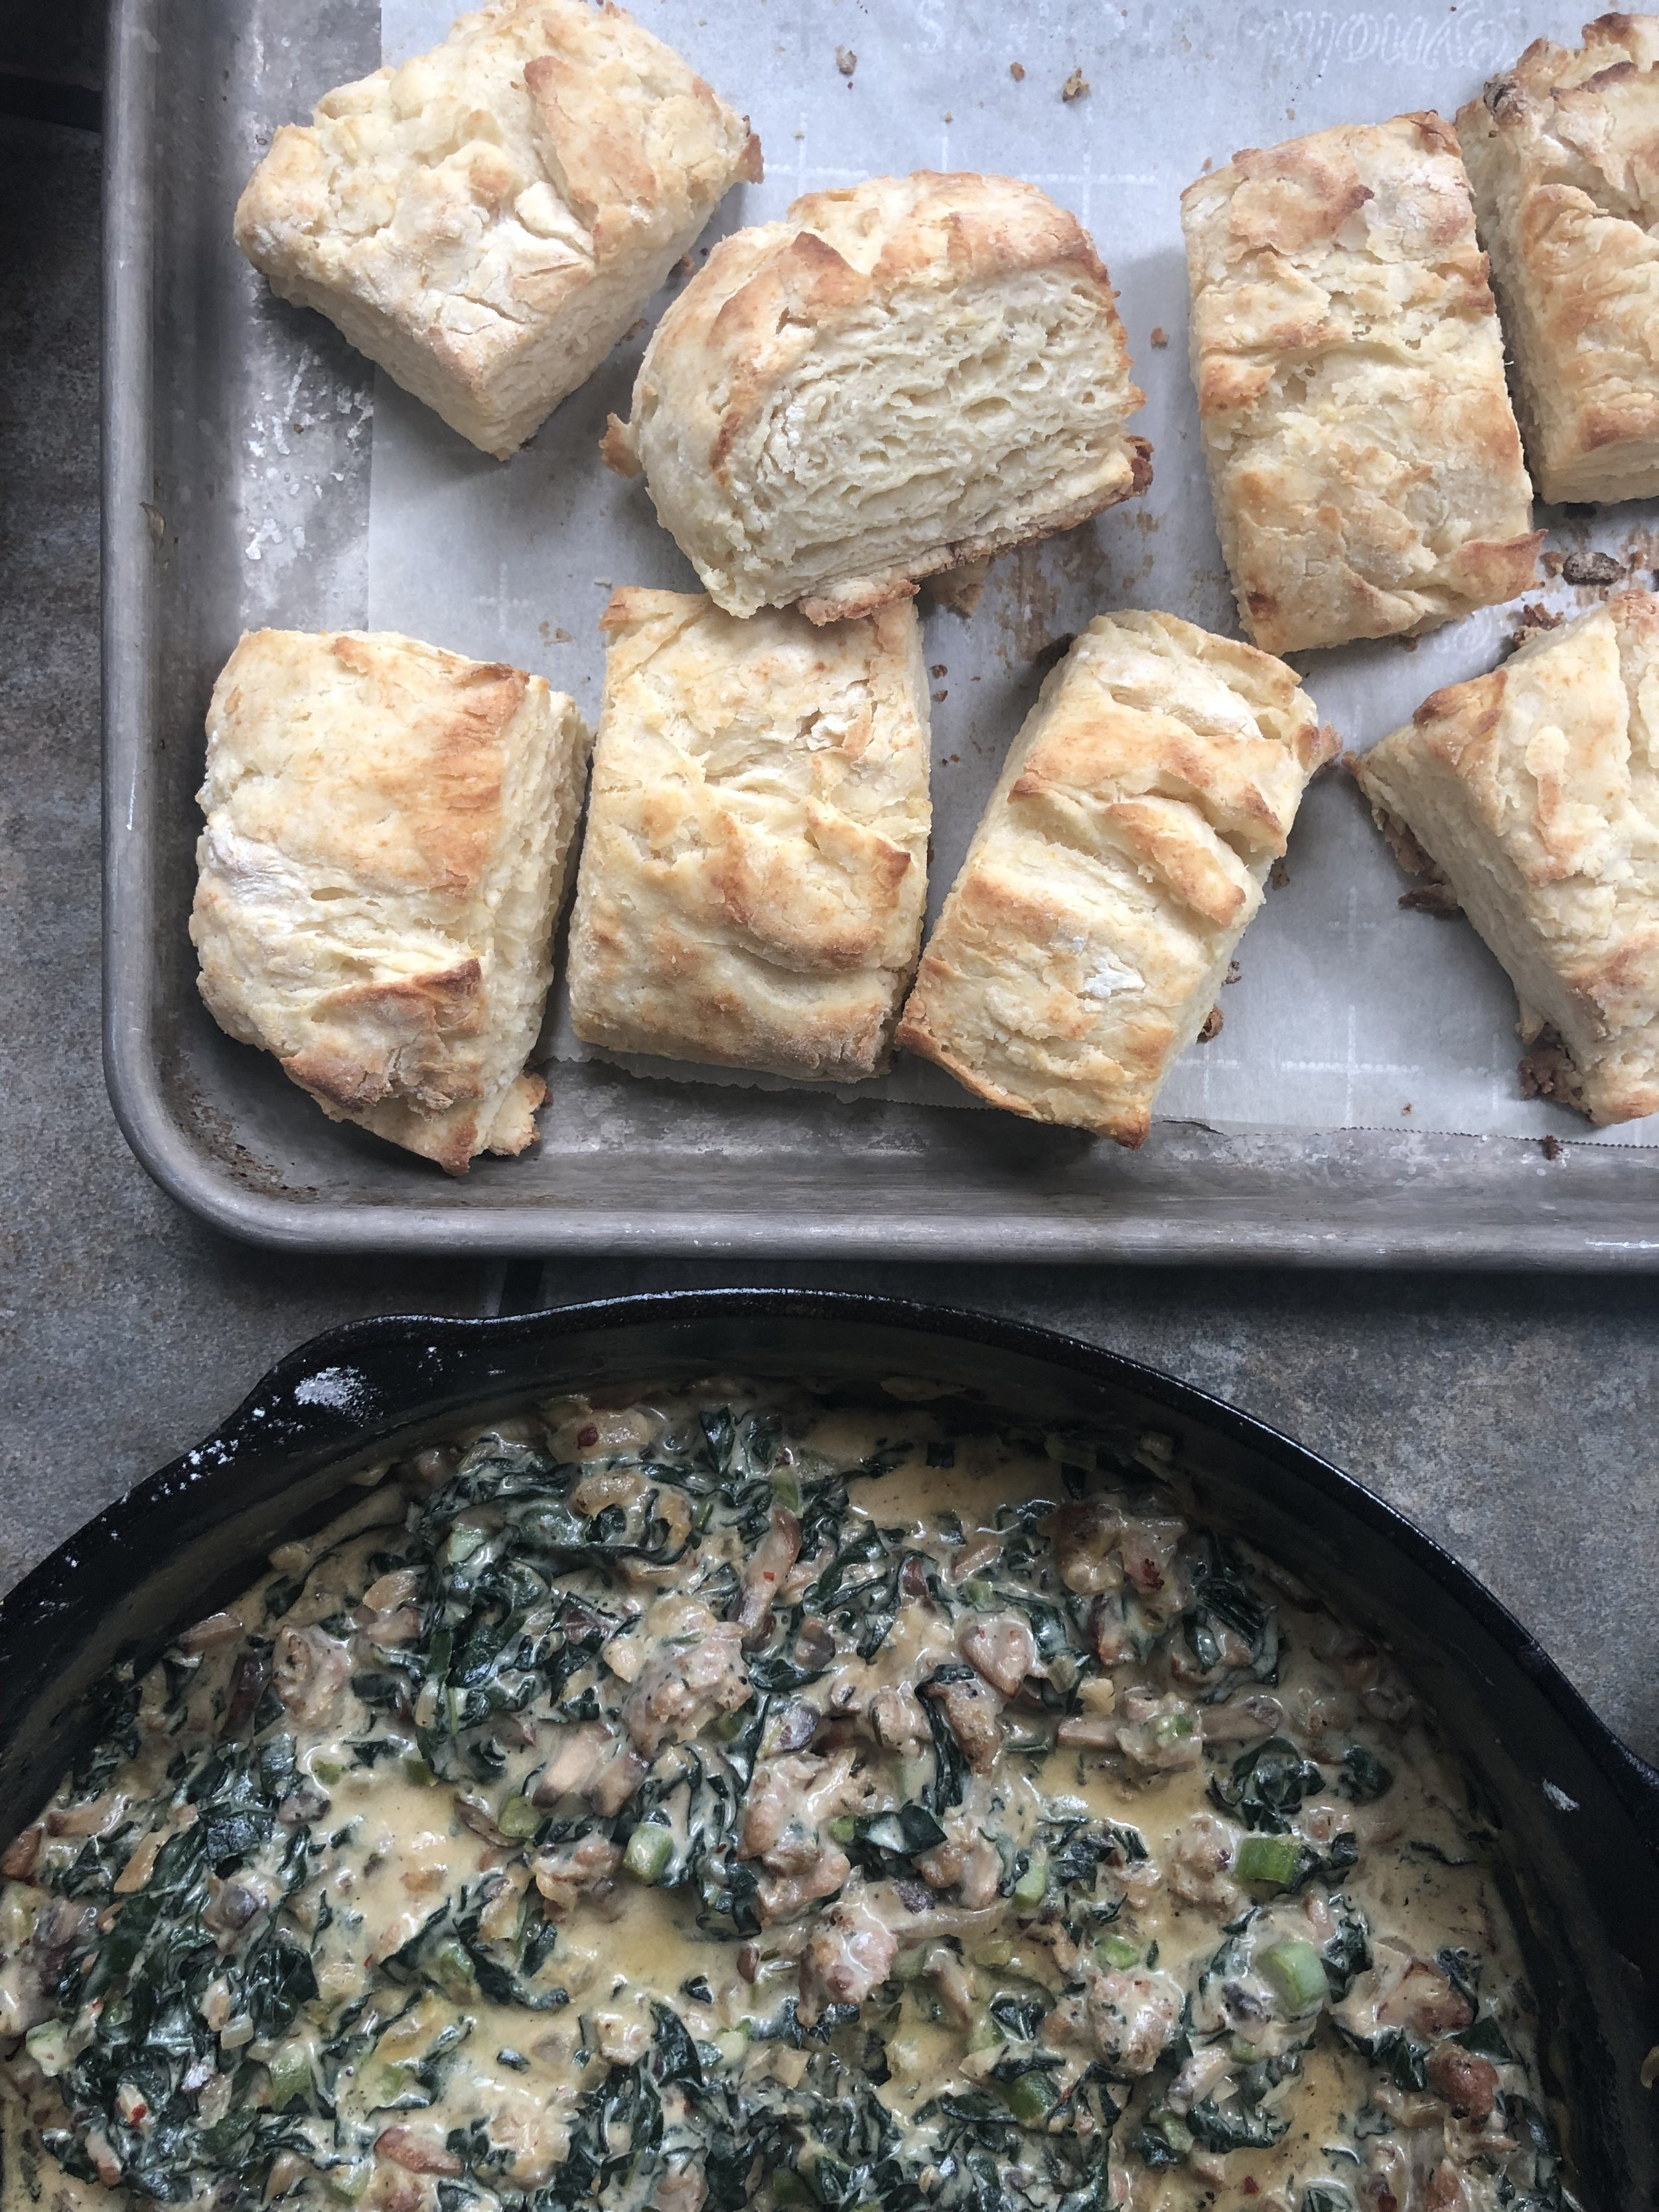 improv. buttermilk biscuits and mushroom, kale and italian sausage gravy.